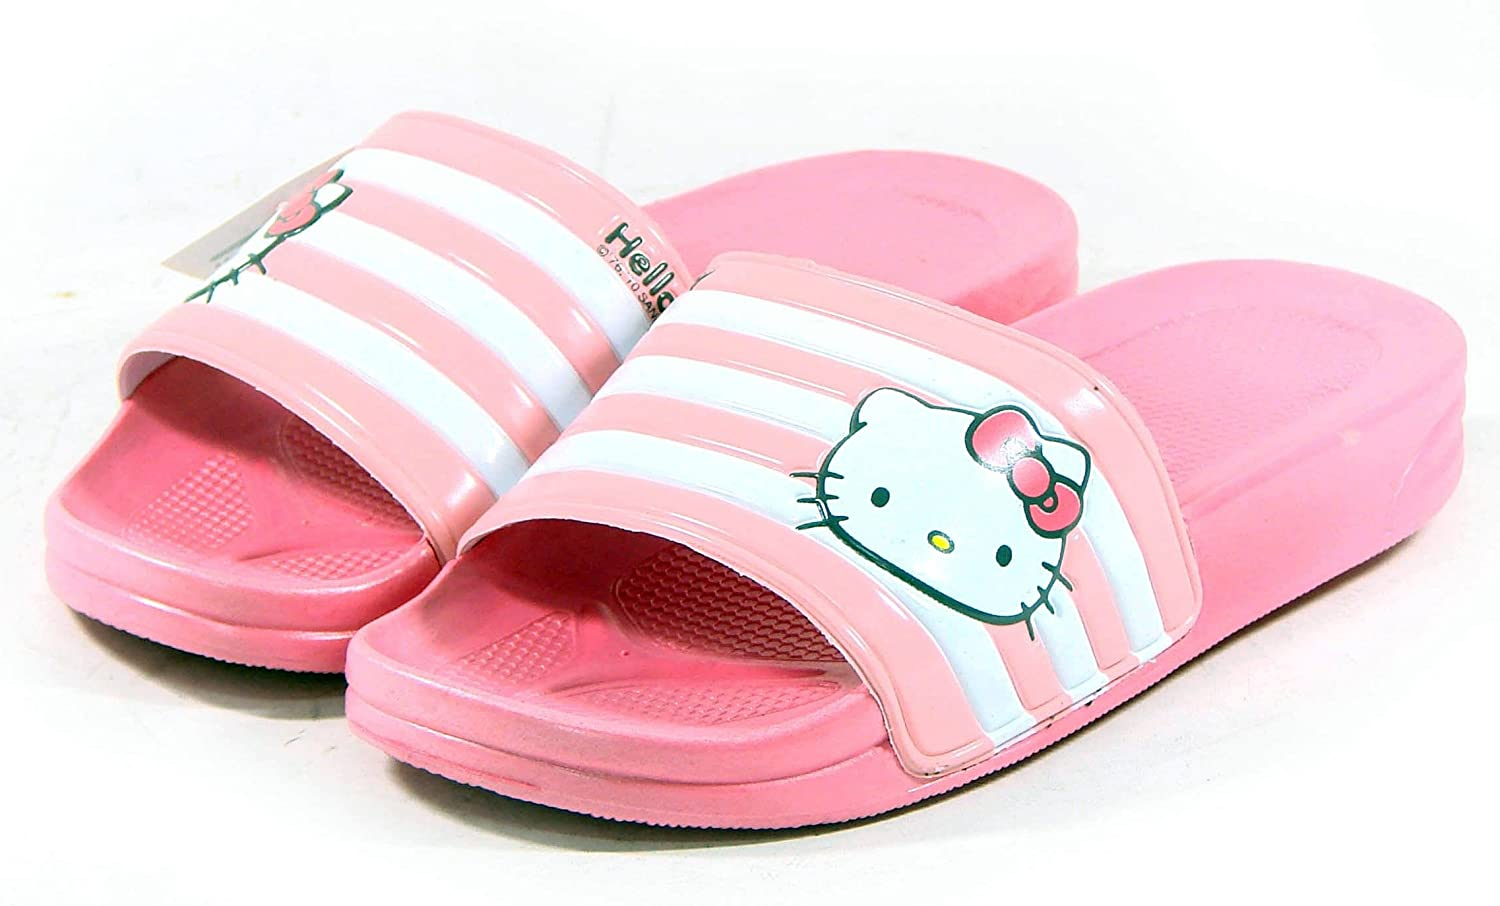 Hello Kitty Shoes Amazon.com: Hello Kitty LALA Lovely Womens Summer Slippers Shoes Beach Pool  Pink US size 6: Beauty